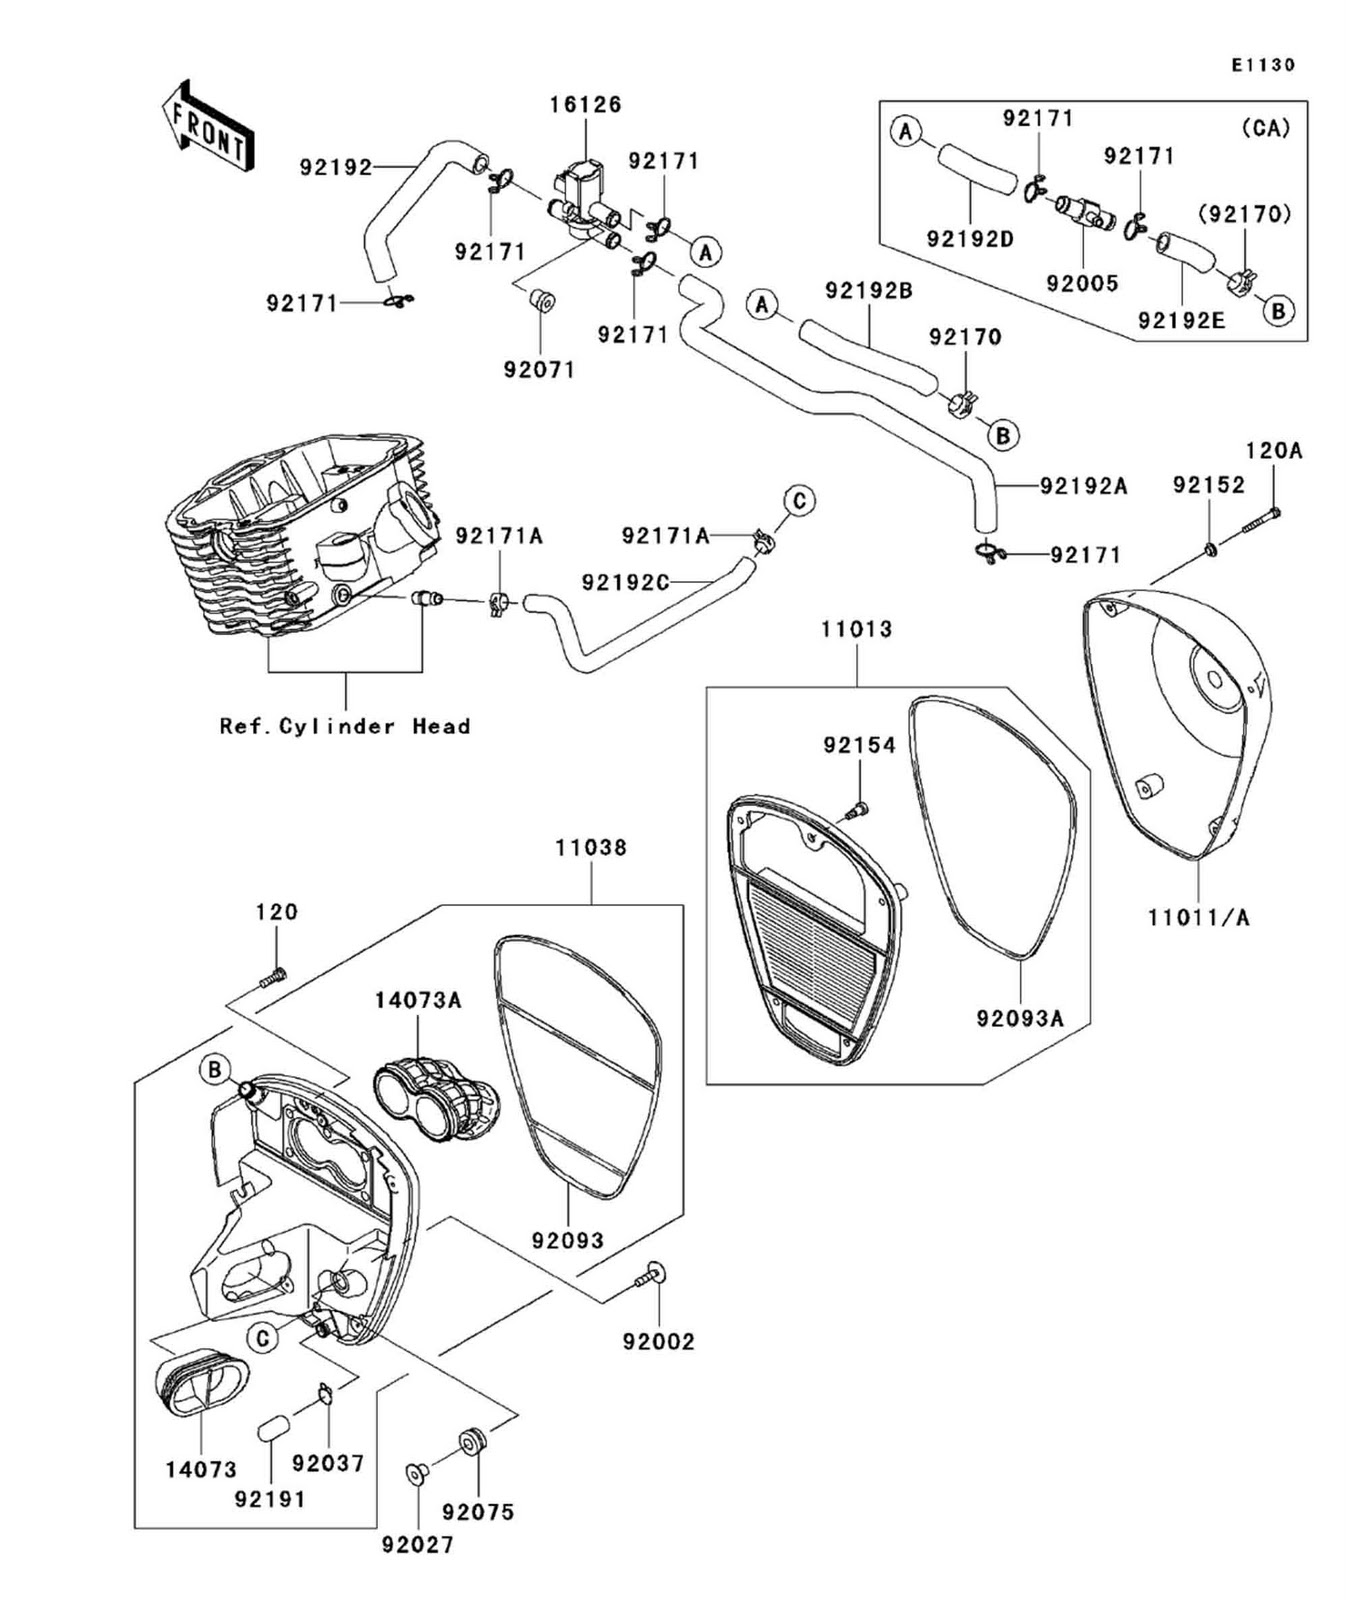 Wiring Diagram For Kawasaki Vulcan 1600. Diagram. Auto